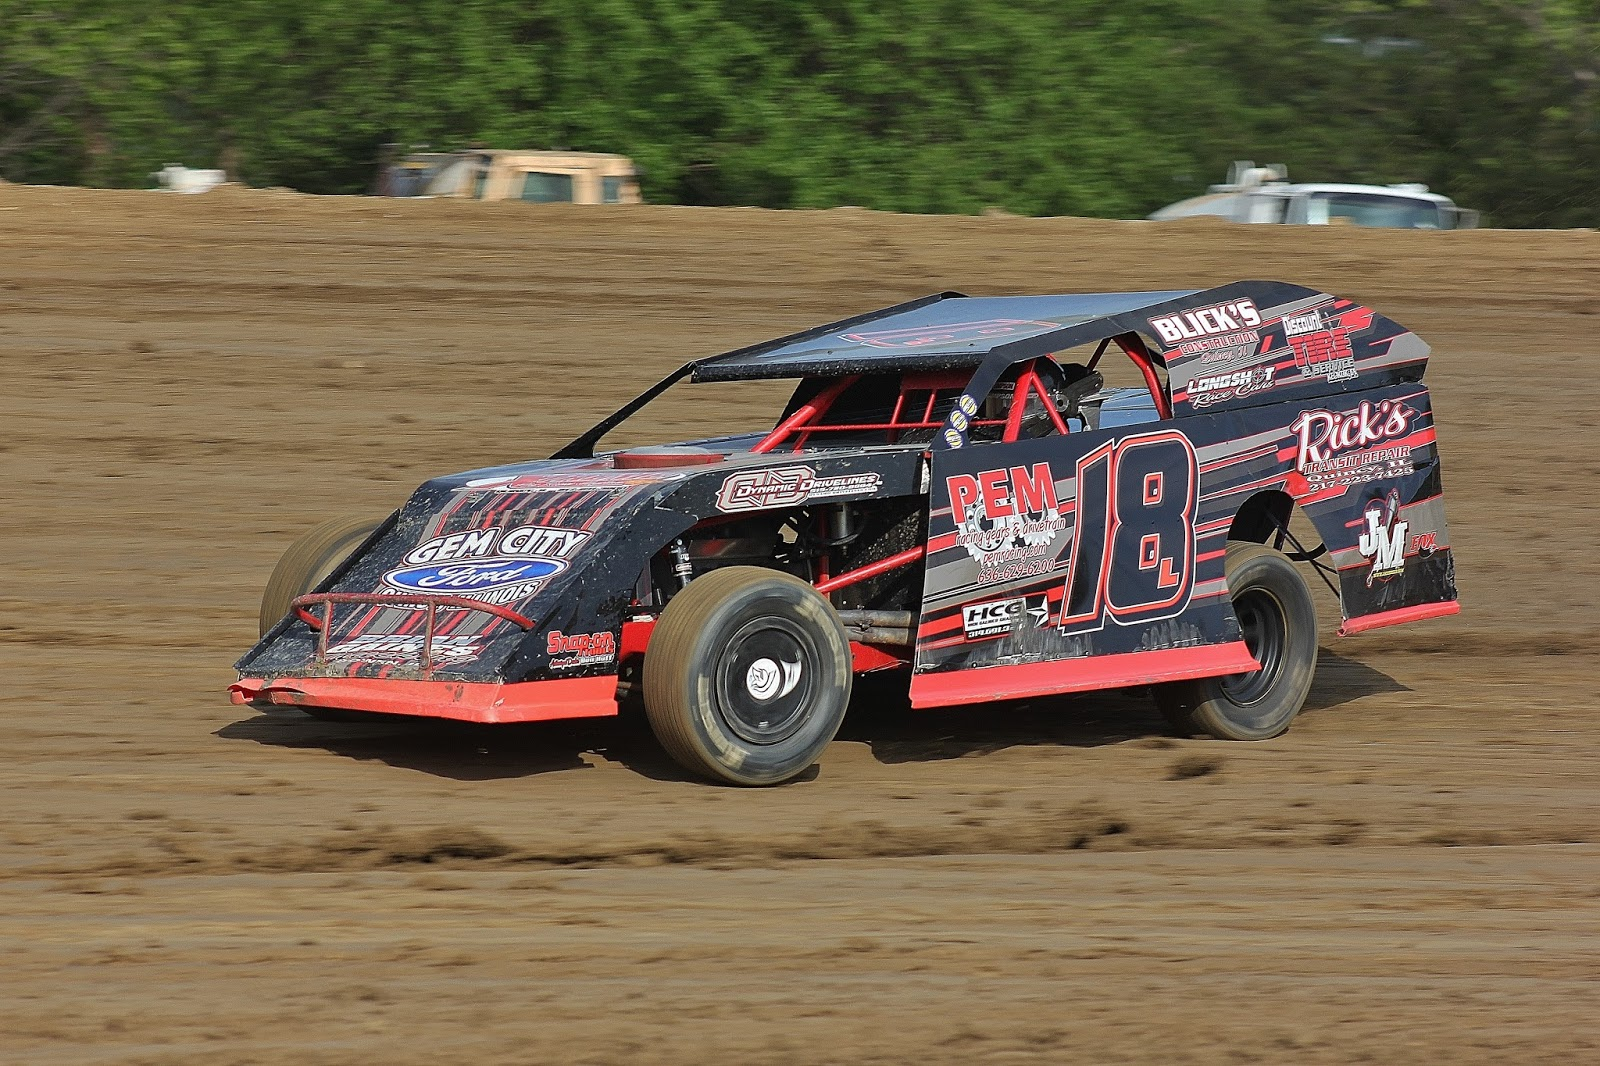 """Midwest Racing News: """"Scottie 42"""" at Quincy Raceways Goes ..."""